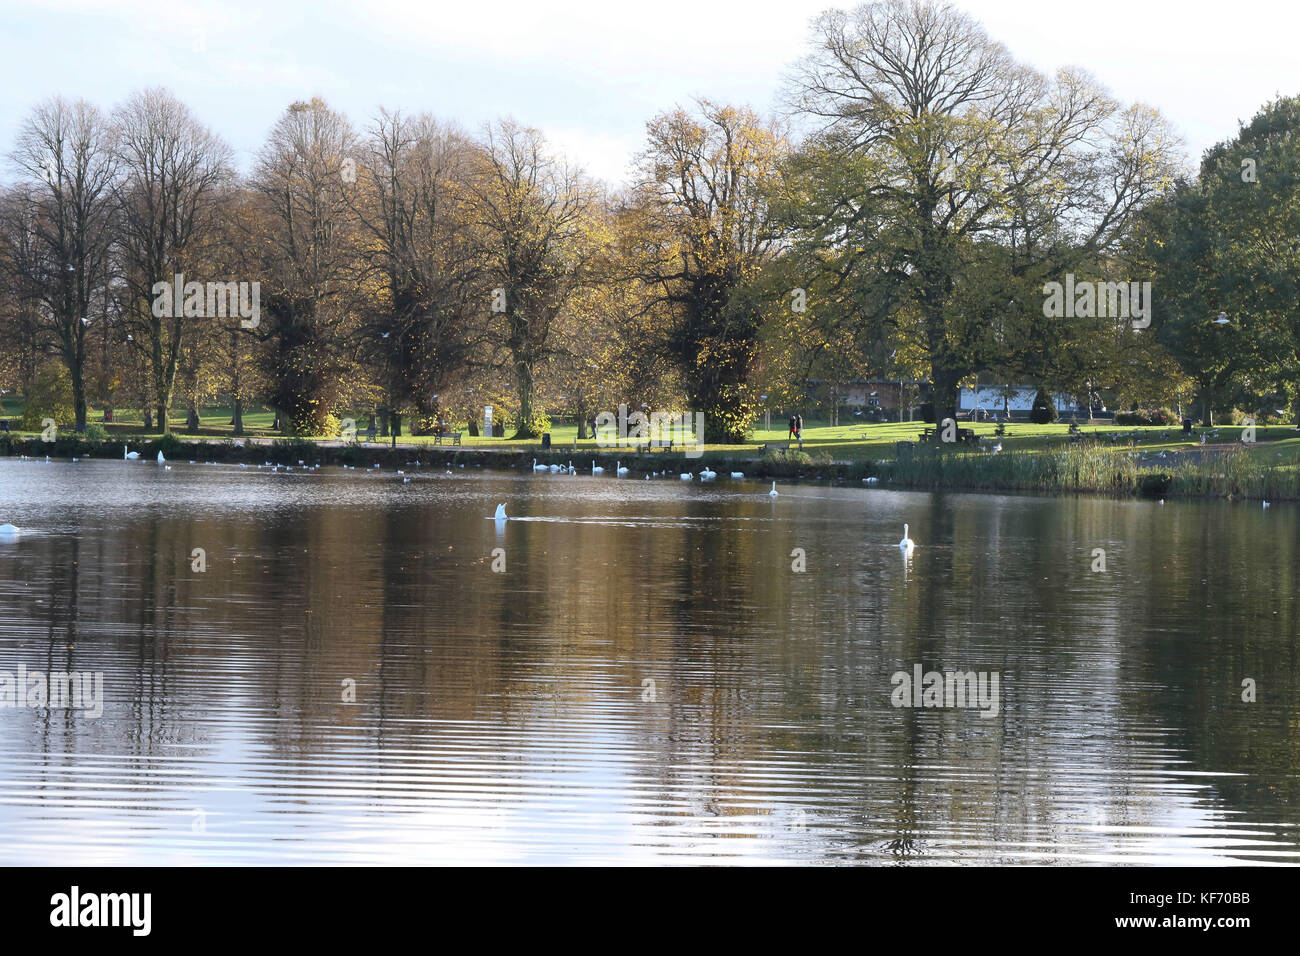 Lurgan, Northern Ireland, UK. 26 October 2017. High pressure at this time of year means sunny days, calm conditions Stock Photo